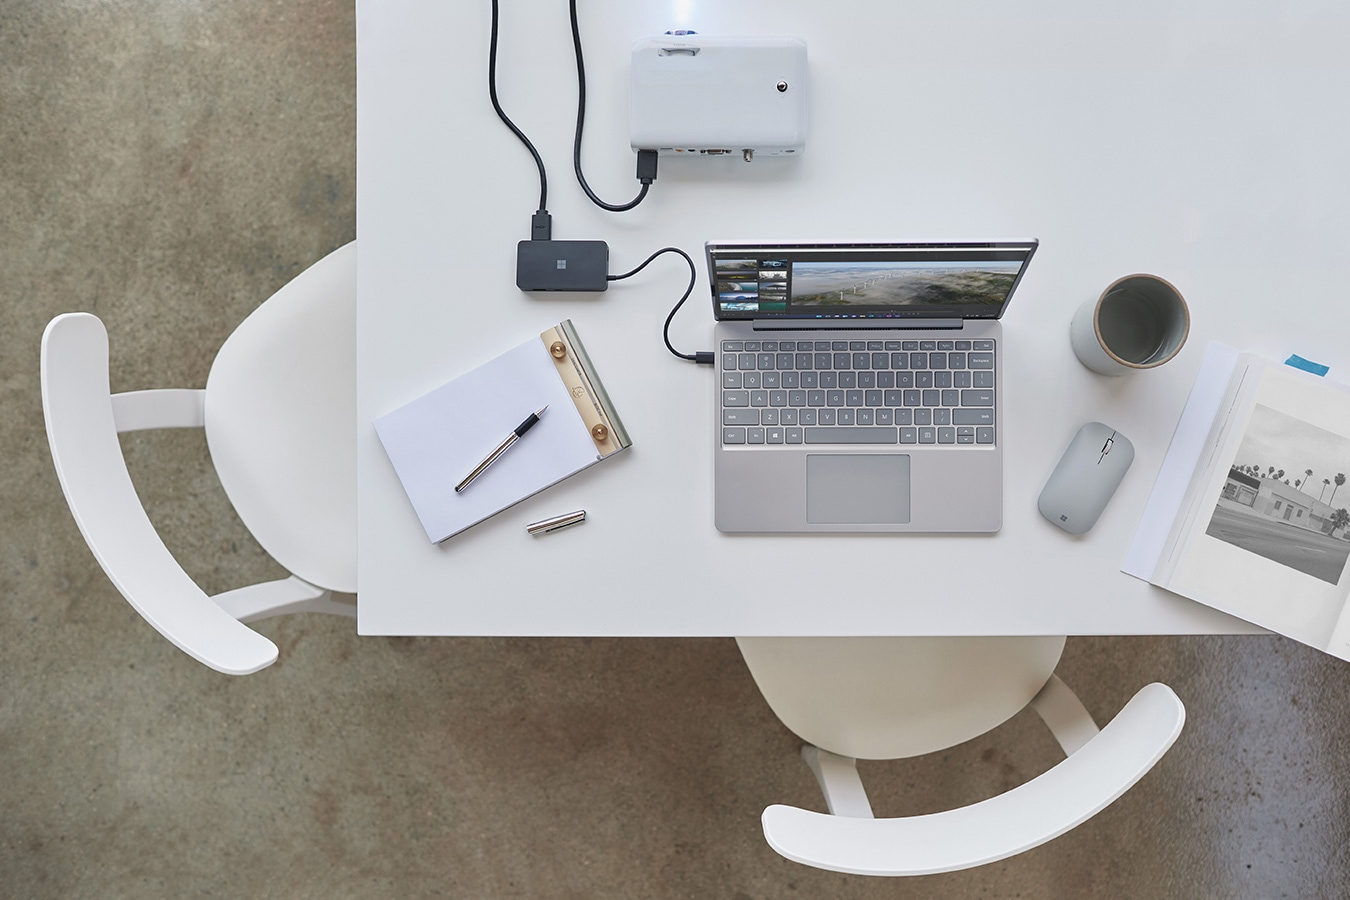 Surface Laptop Go on a desk and connected to a projector